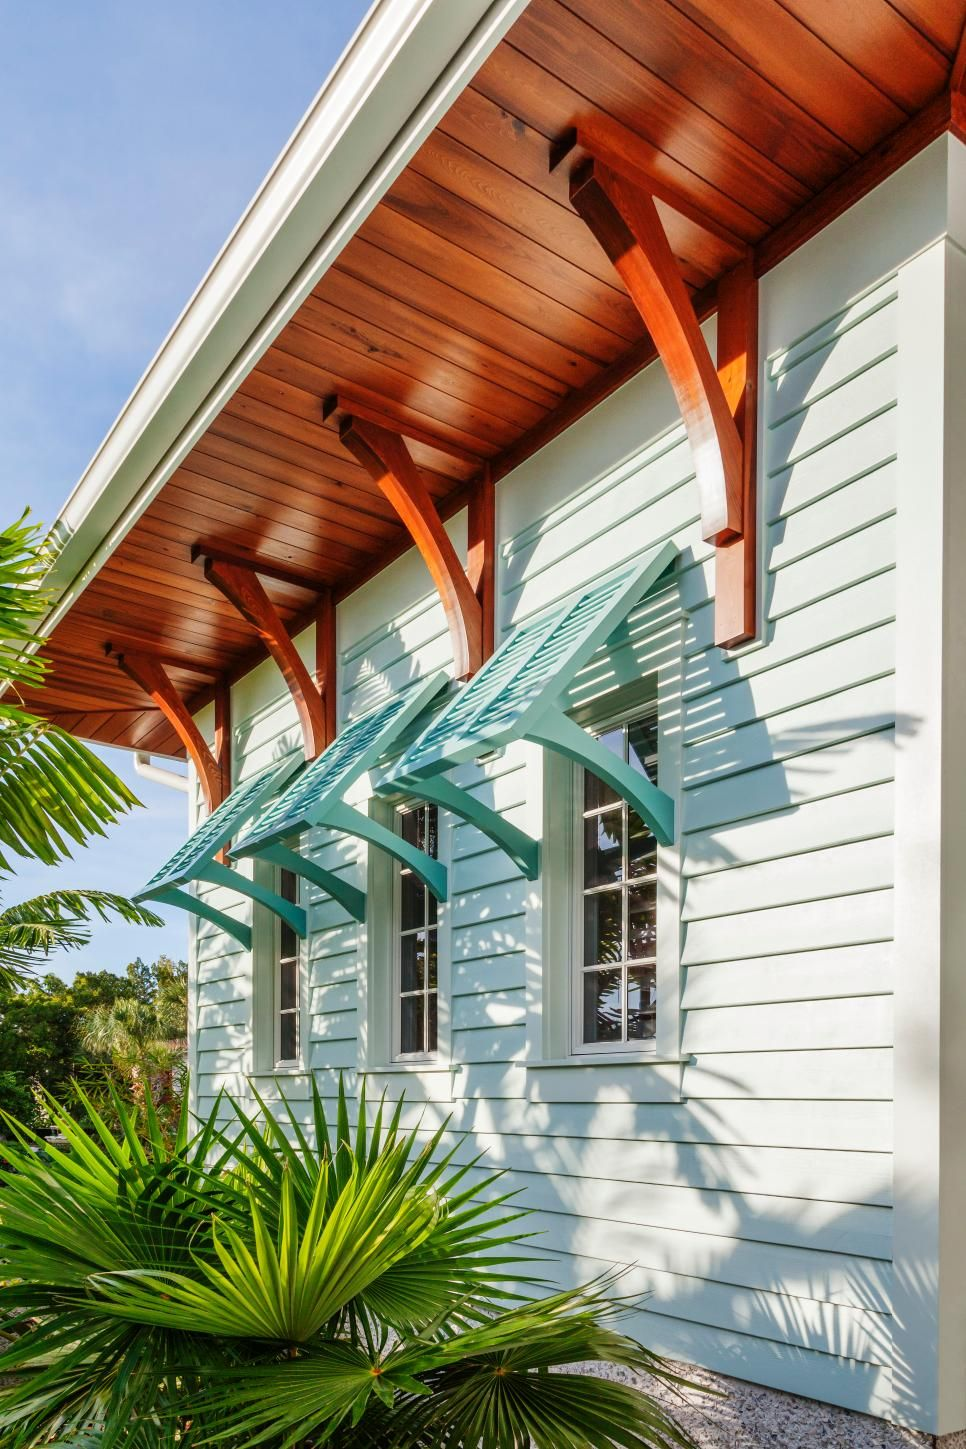 Horizontal Siding Colorful Bahama Shutters A Beautiful Wood Soffit And Decorative Brackets Create An Island Inspired Feel At This Florida Home